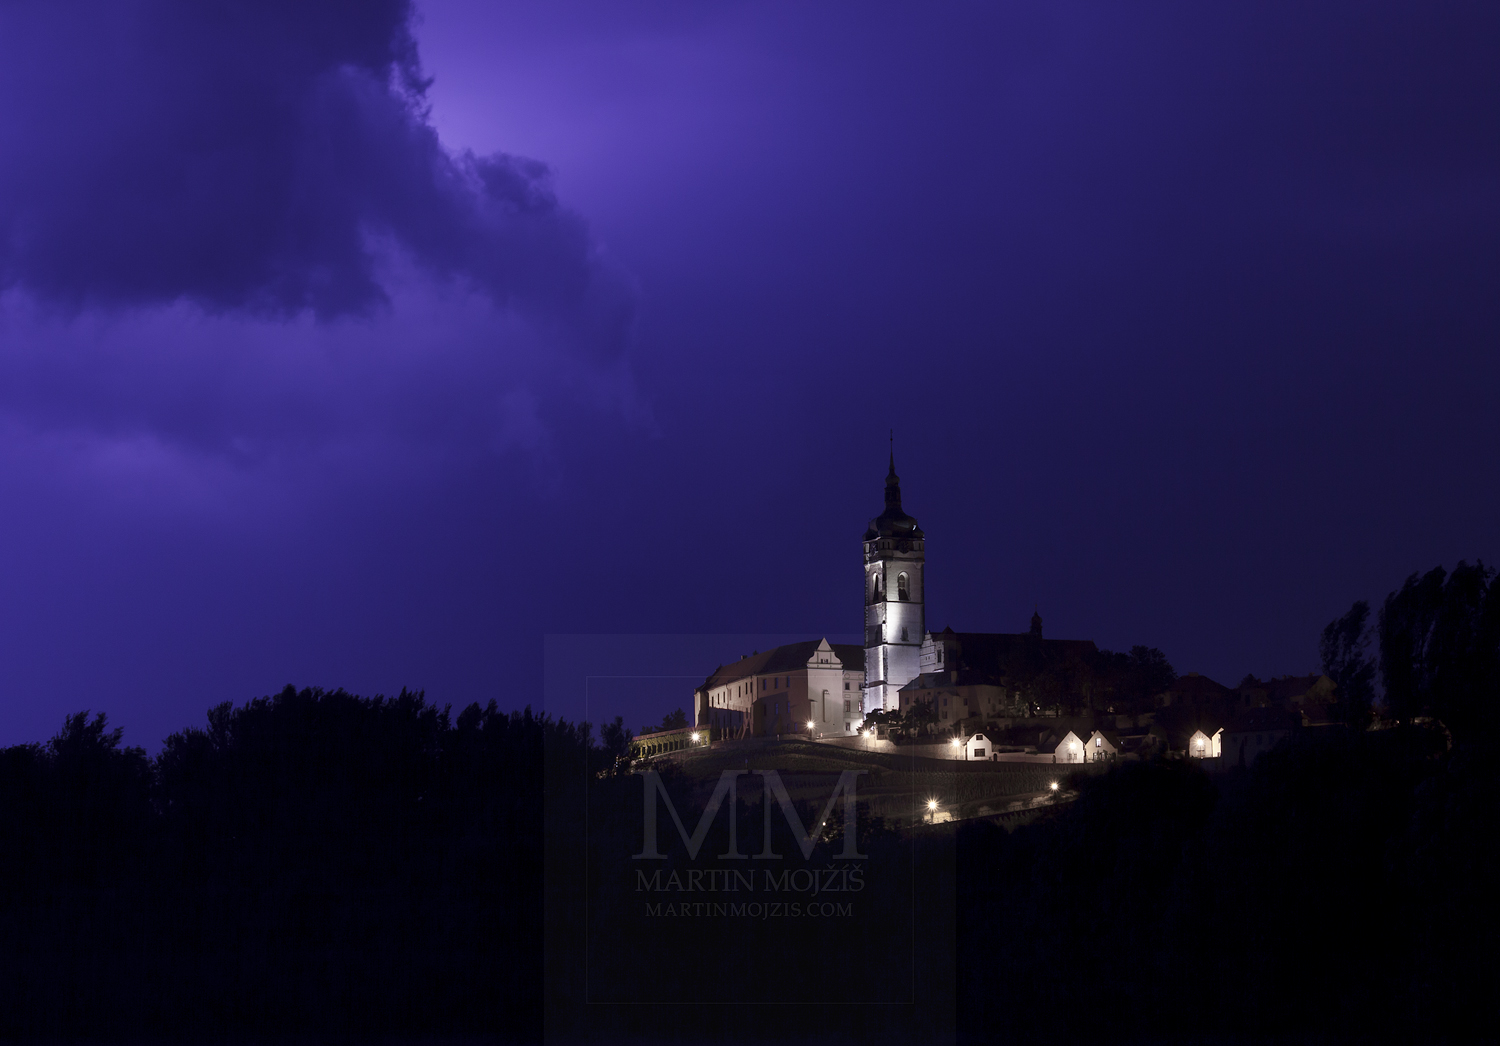 Melnik Chateau and Church in the storm. Photograph © Martin Mojzis.